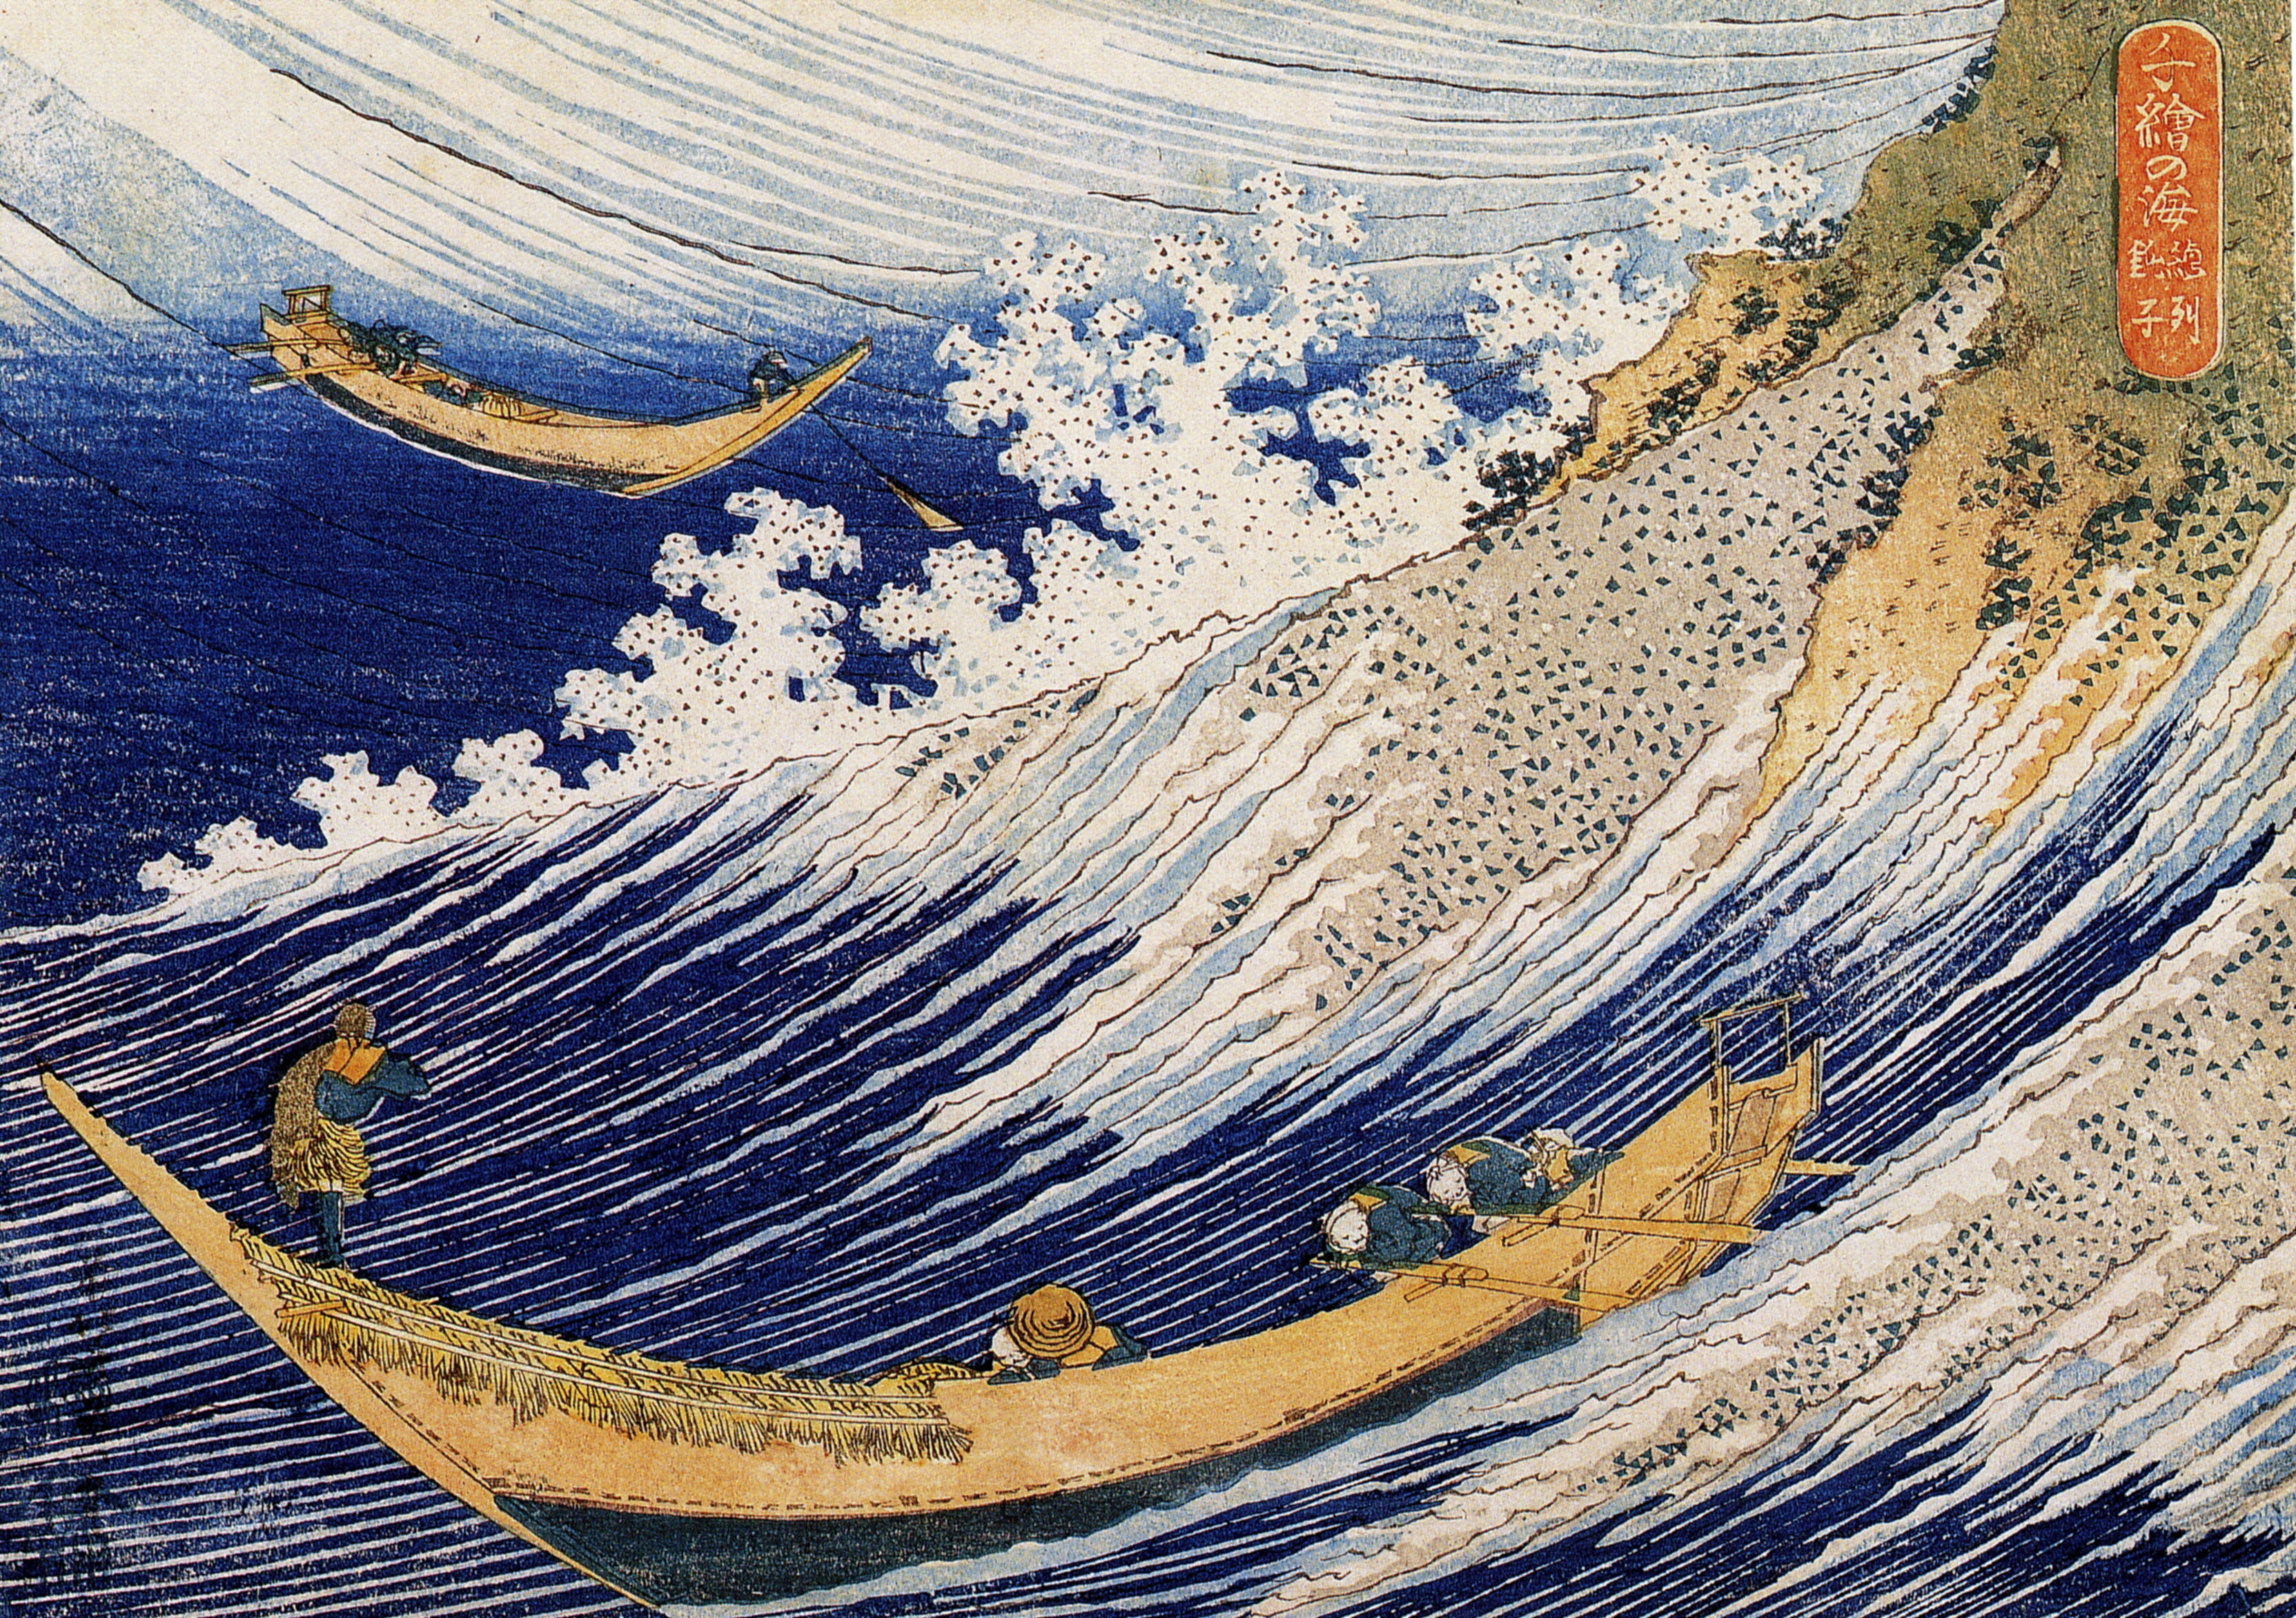 http://upload.wikimedia.org/wikipedia/commons/0/0f/Hokusai_1760-1849_Ocean_waves.jpg